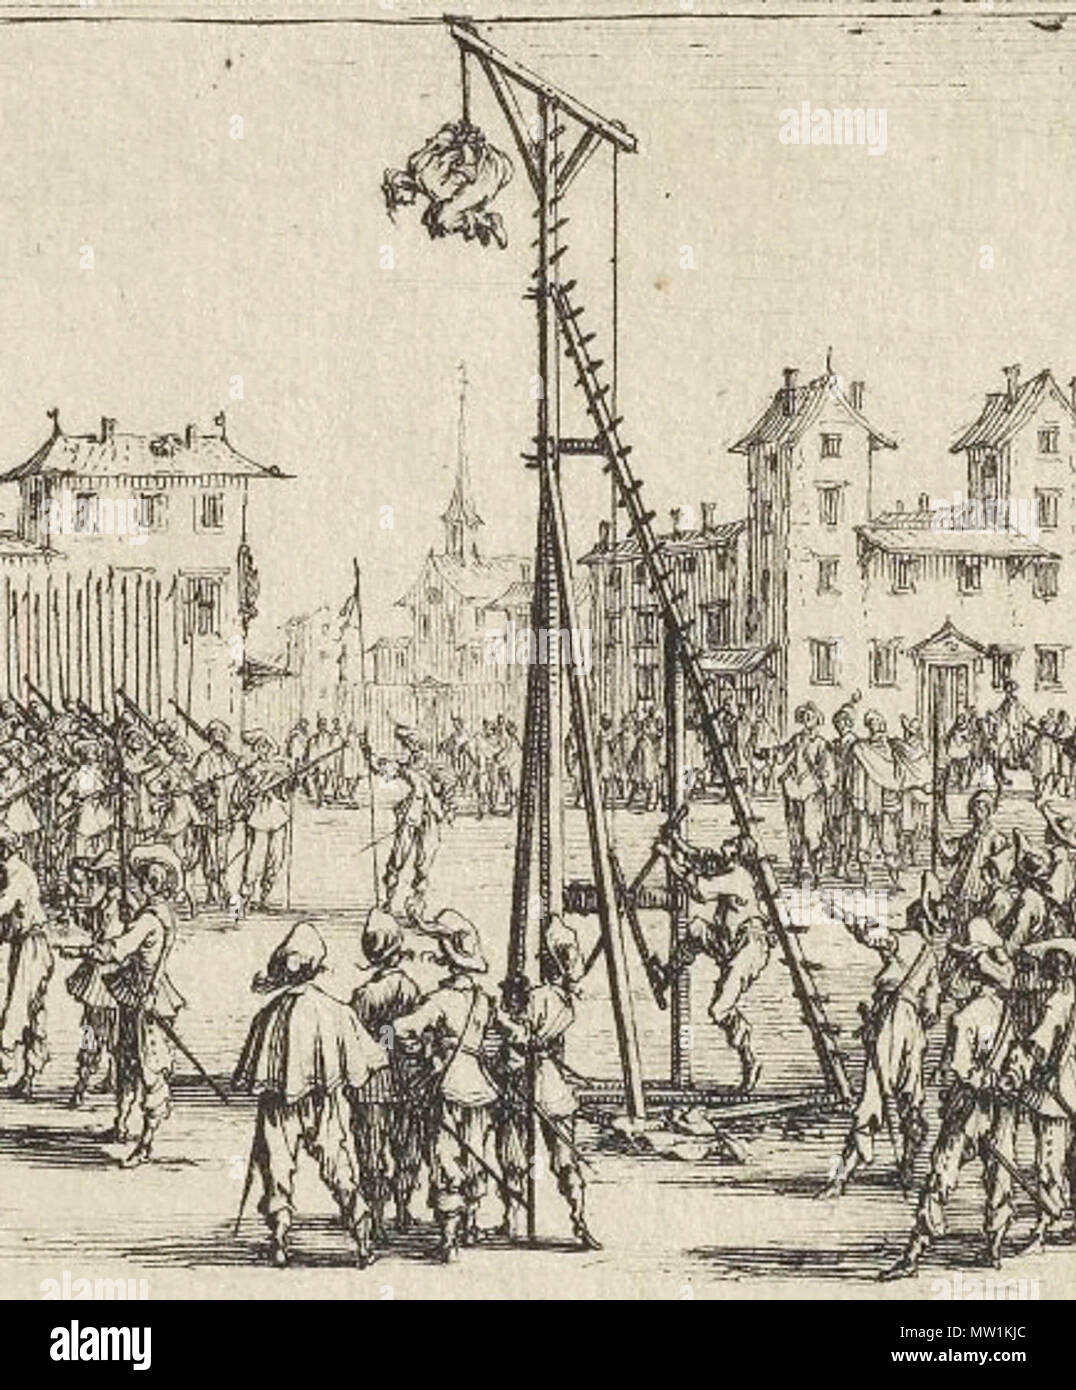 The Strappado, used as public punishment, detail of plate 10 of Les Grandes Misères de la guerre by Jacques Callot, 1633 Stock Photo